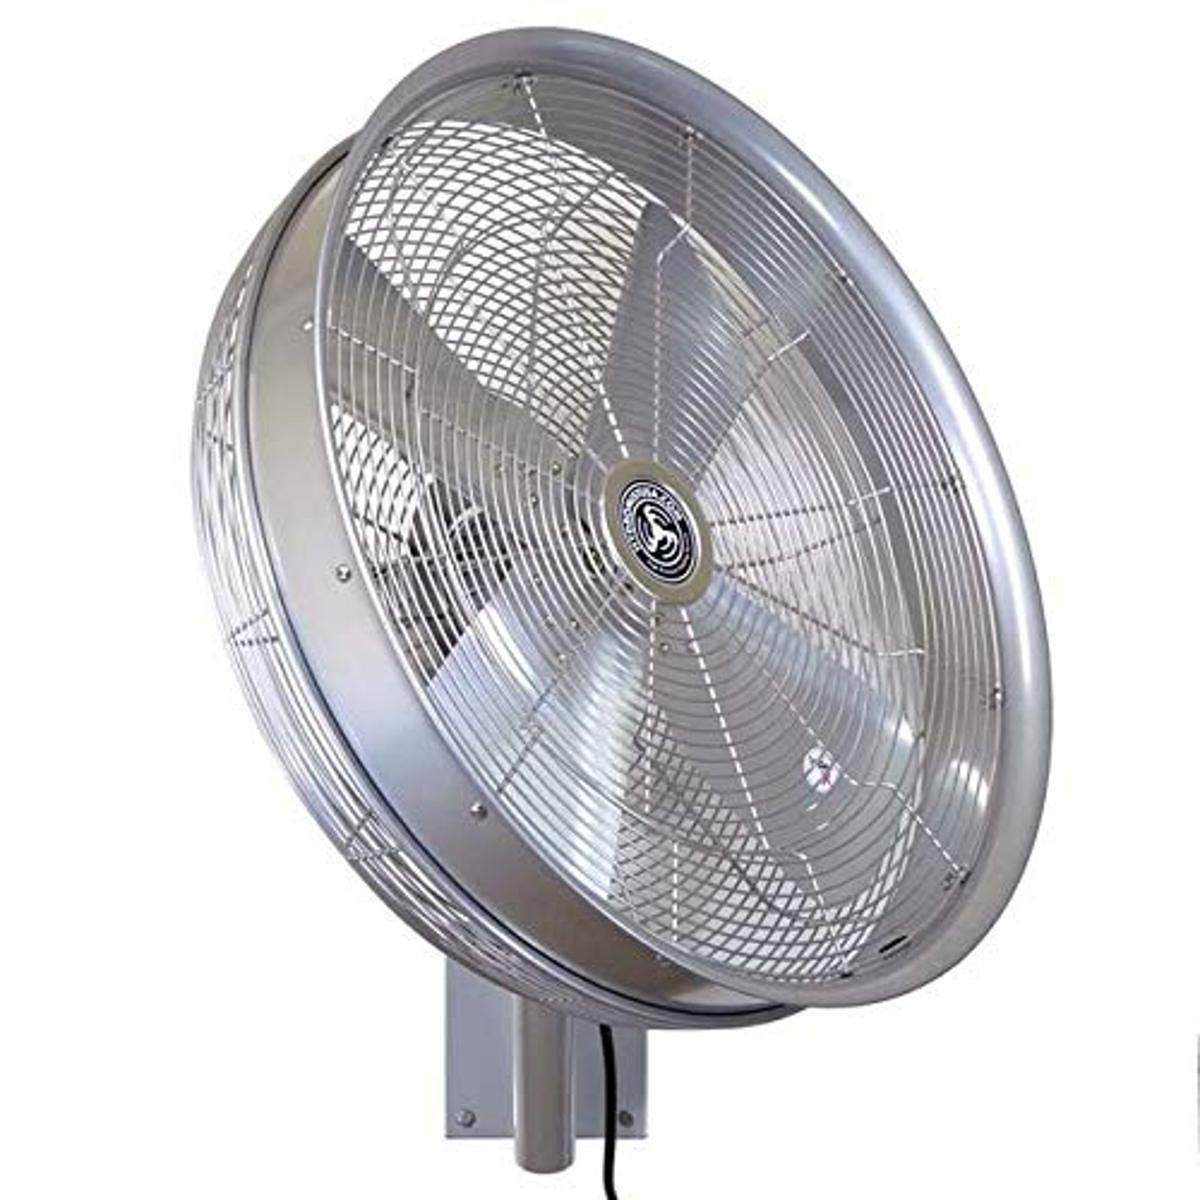 lowest price Hydromist 24 Inch Oscillating Outdoor Shroude Mounted Rated Wall Bargain sale